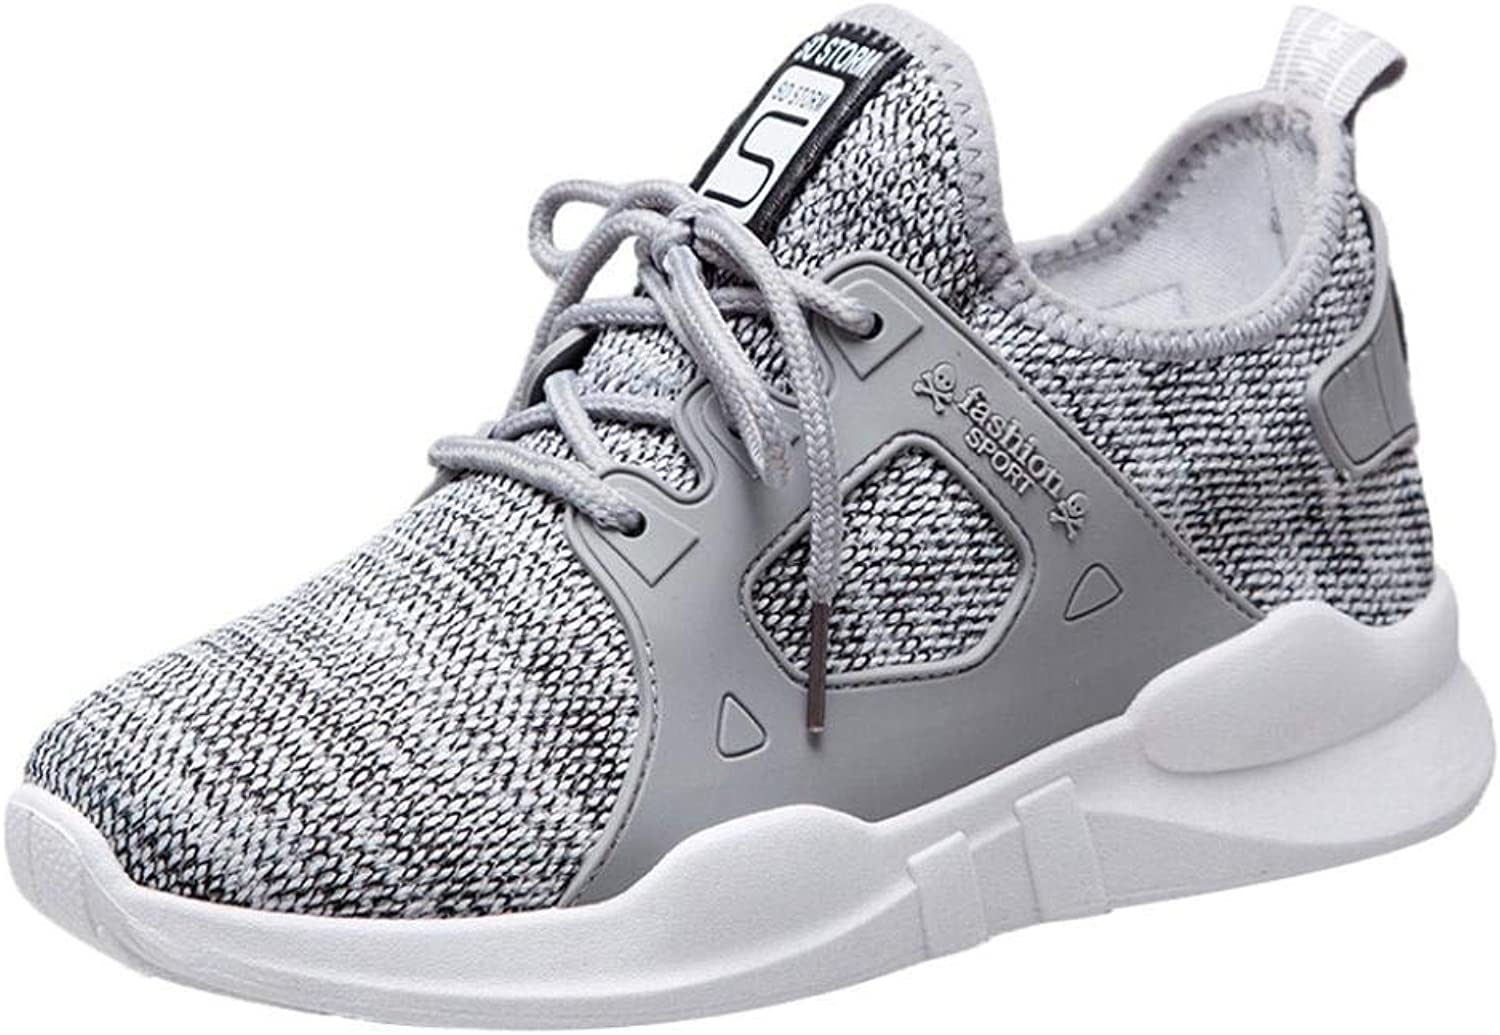 JaHGDU Fashion Women Casual Outdoor Hiking Student Sports Leisure shoes Gym Soft Wild Tight Super Quality Black Pink Grey for Womens